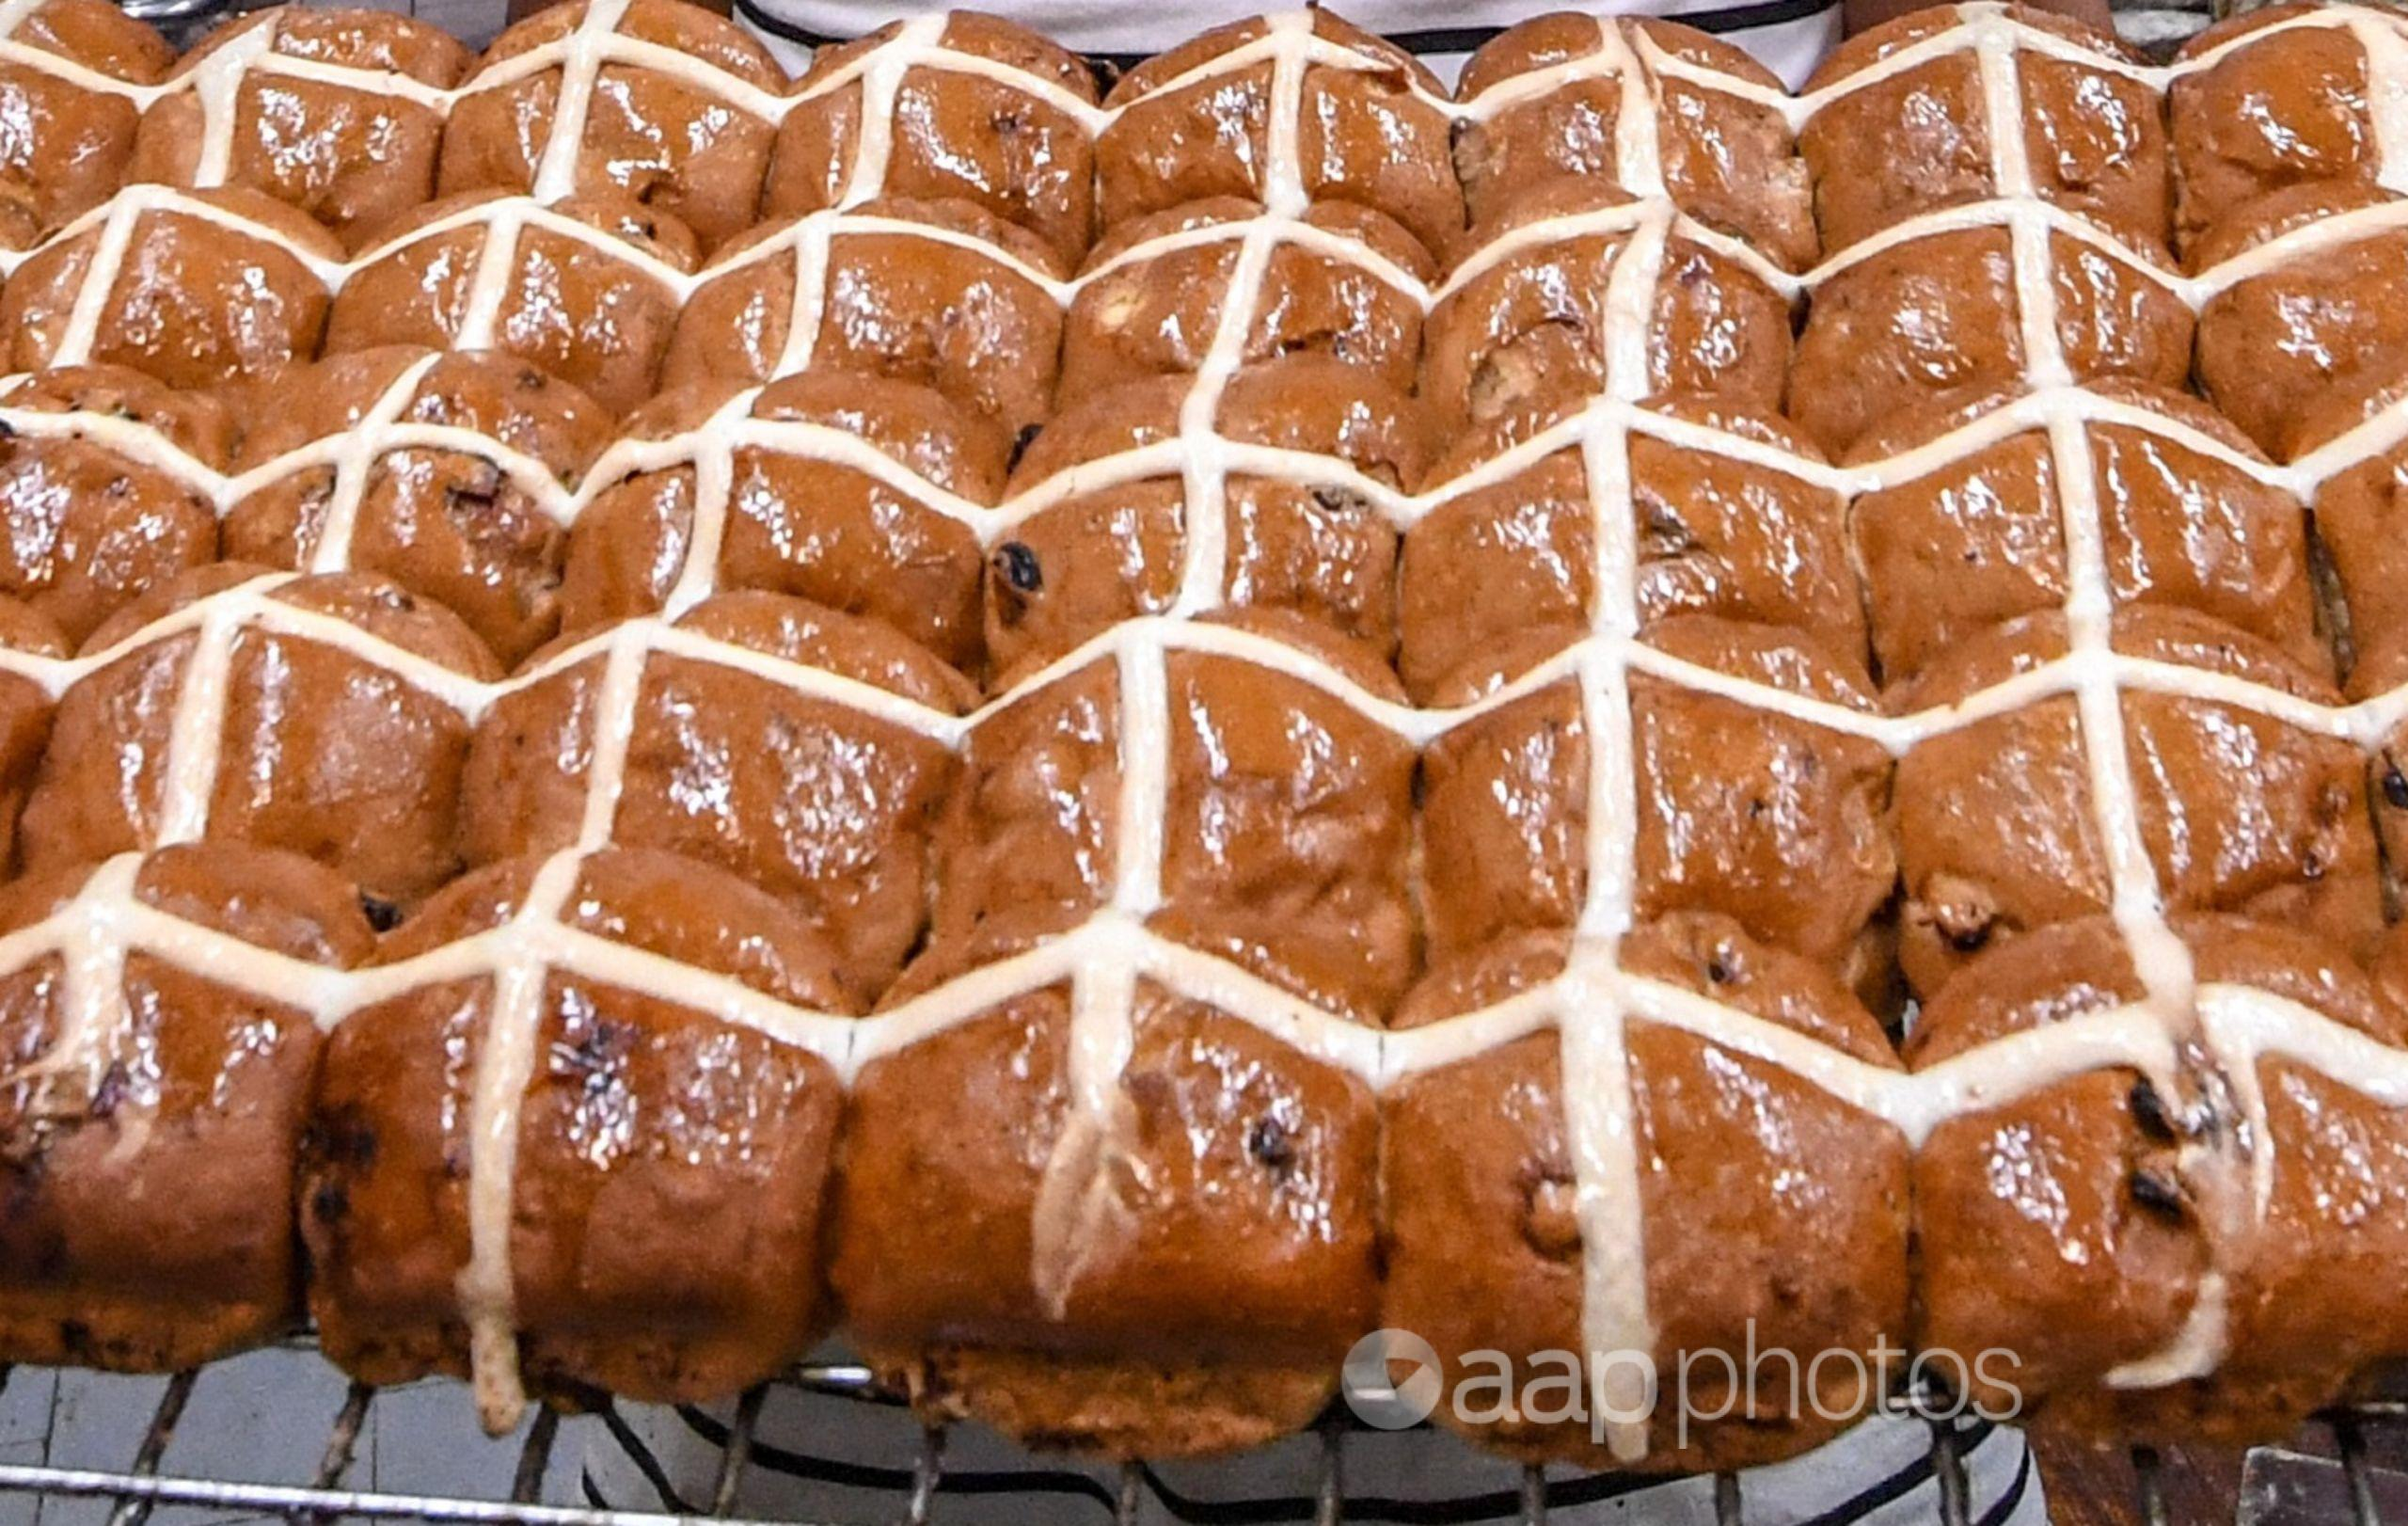 A batch of hot cross buns.